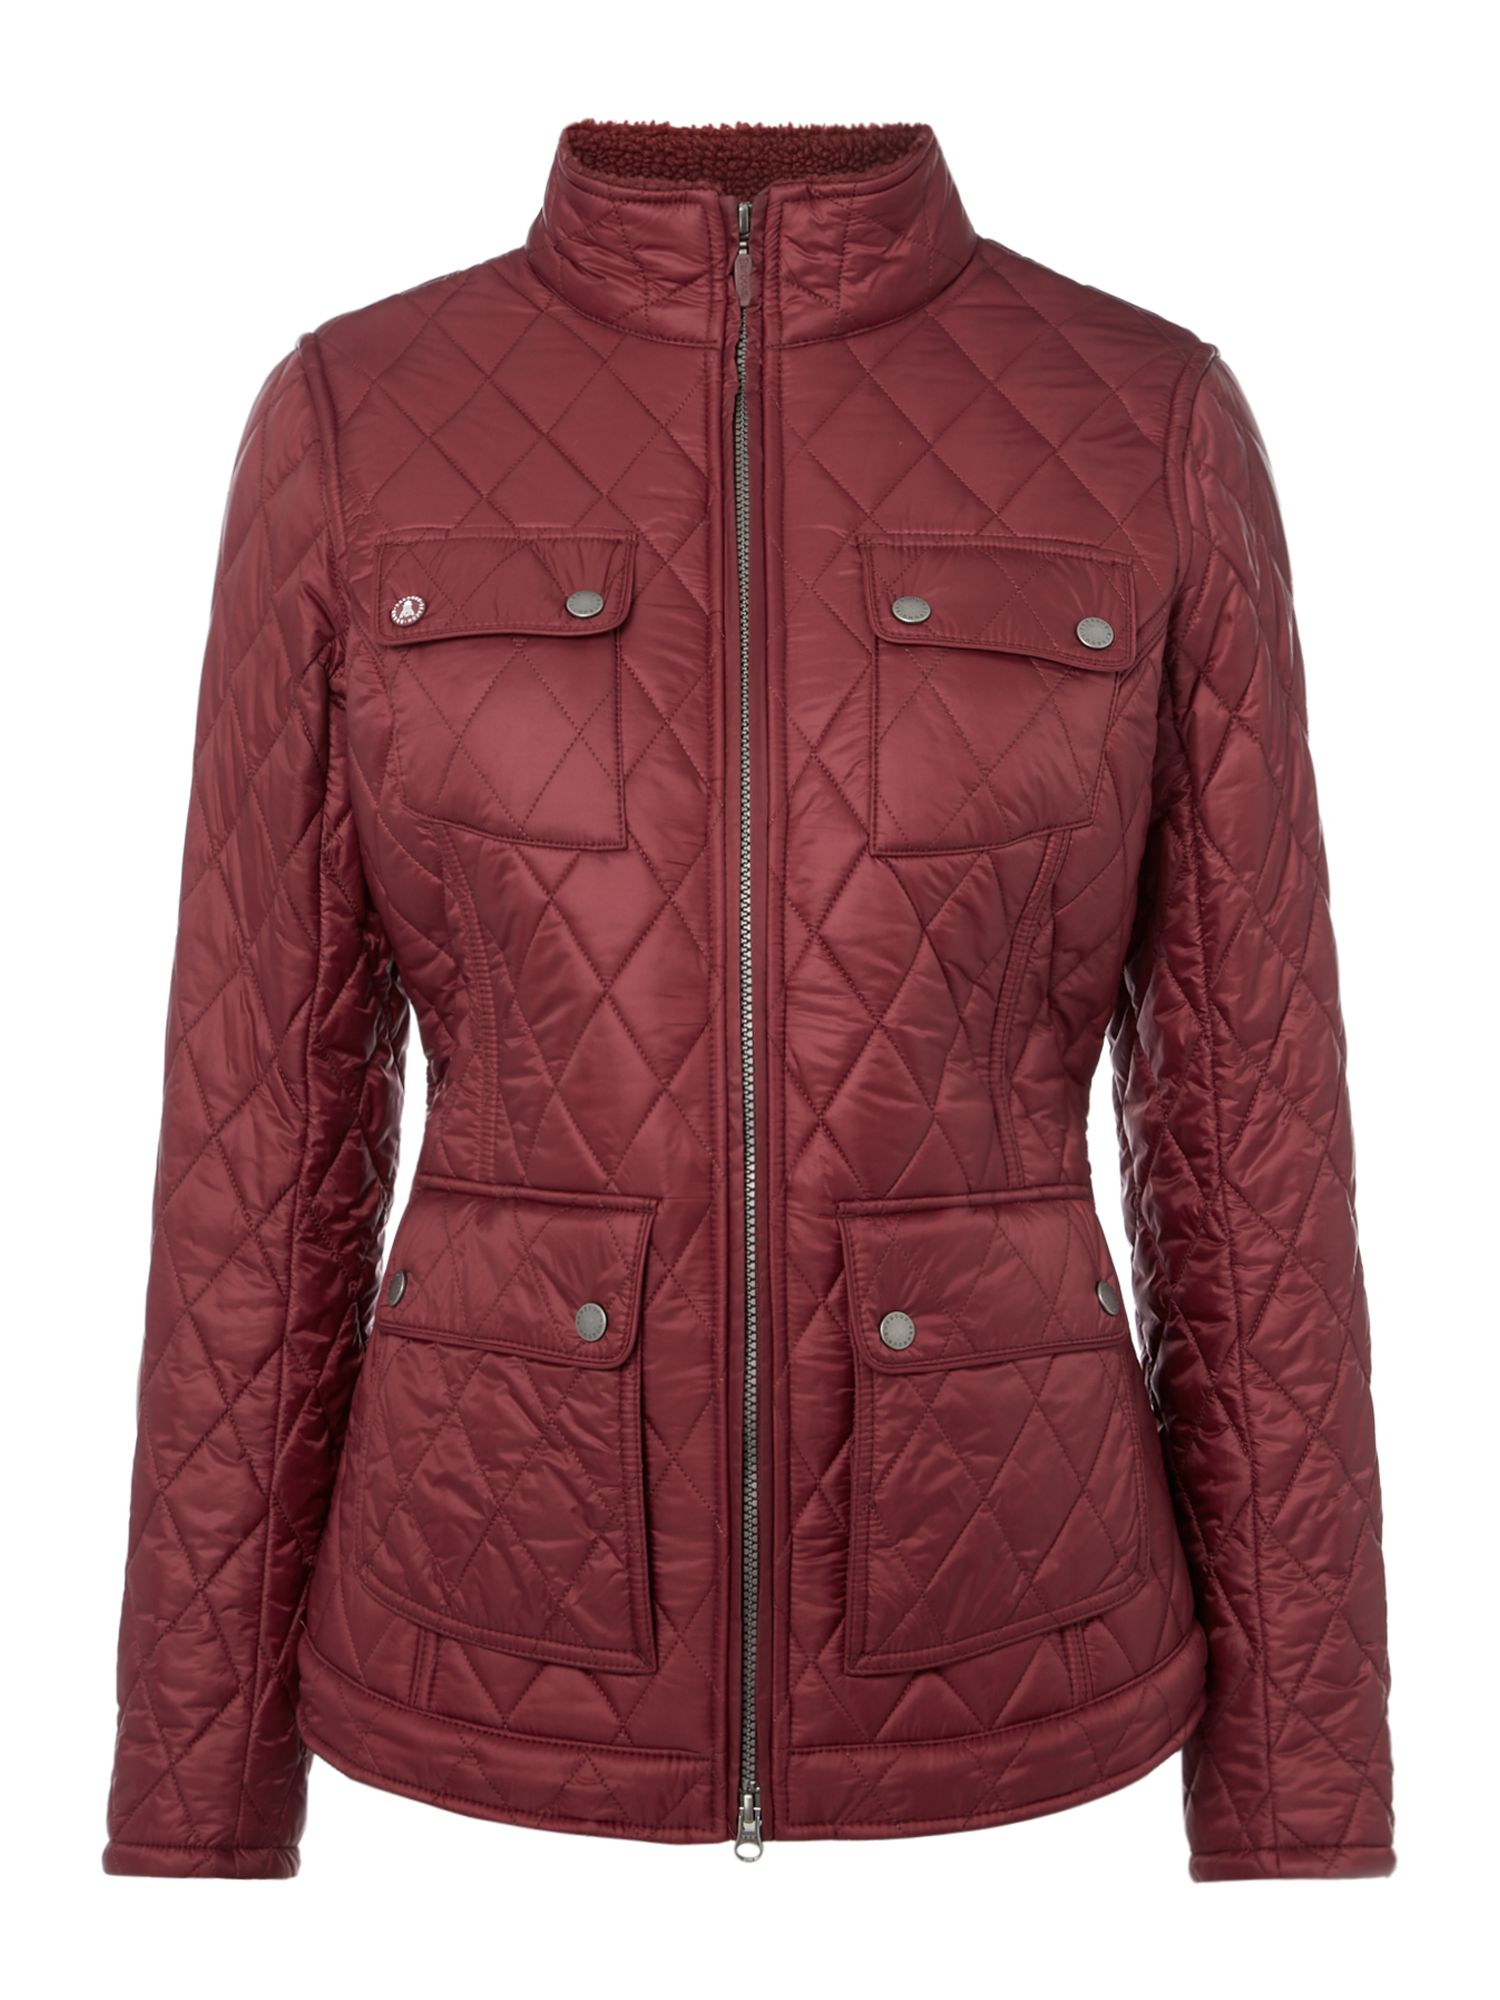 Barbour Filey Quilted Jacket, Wine